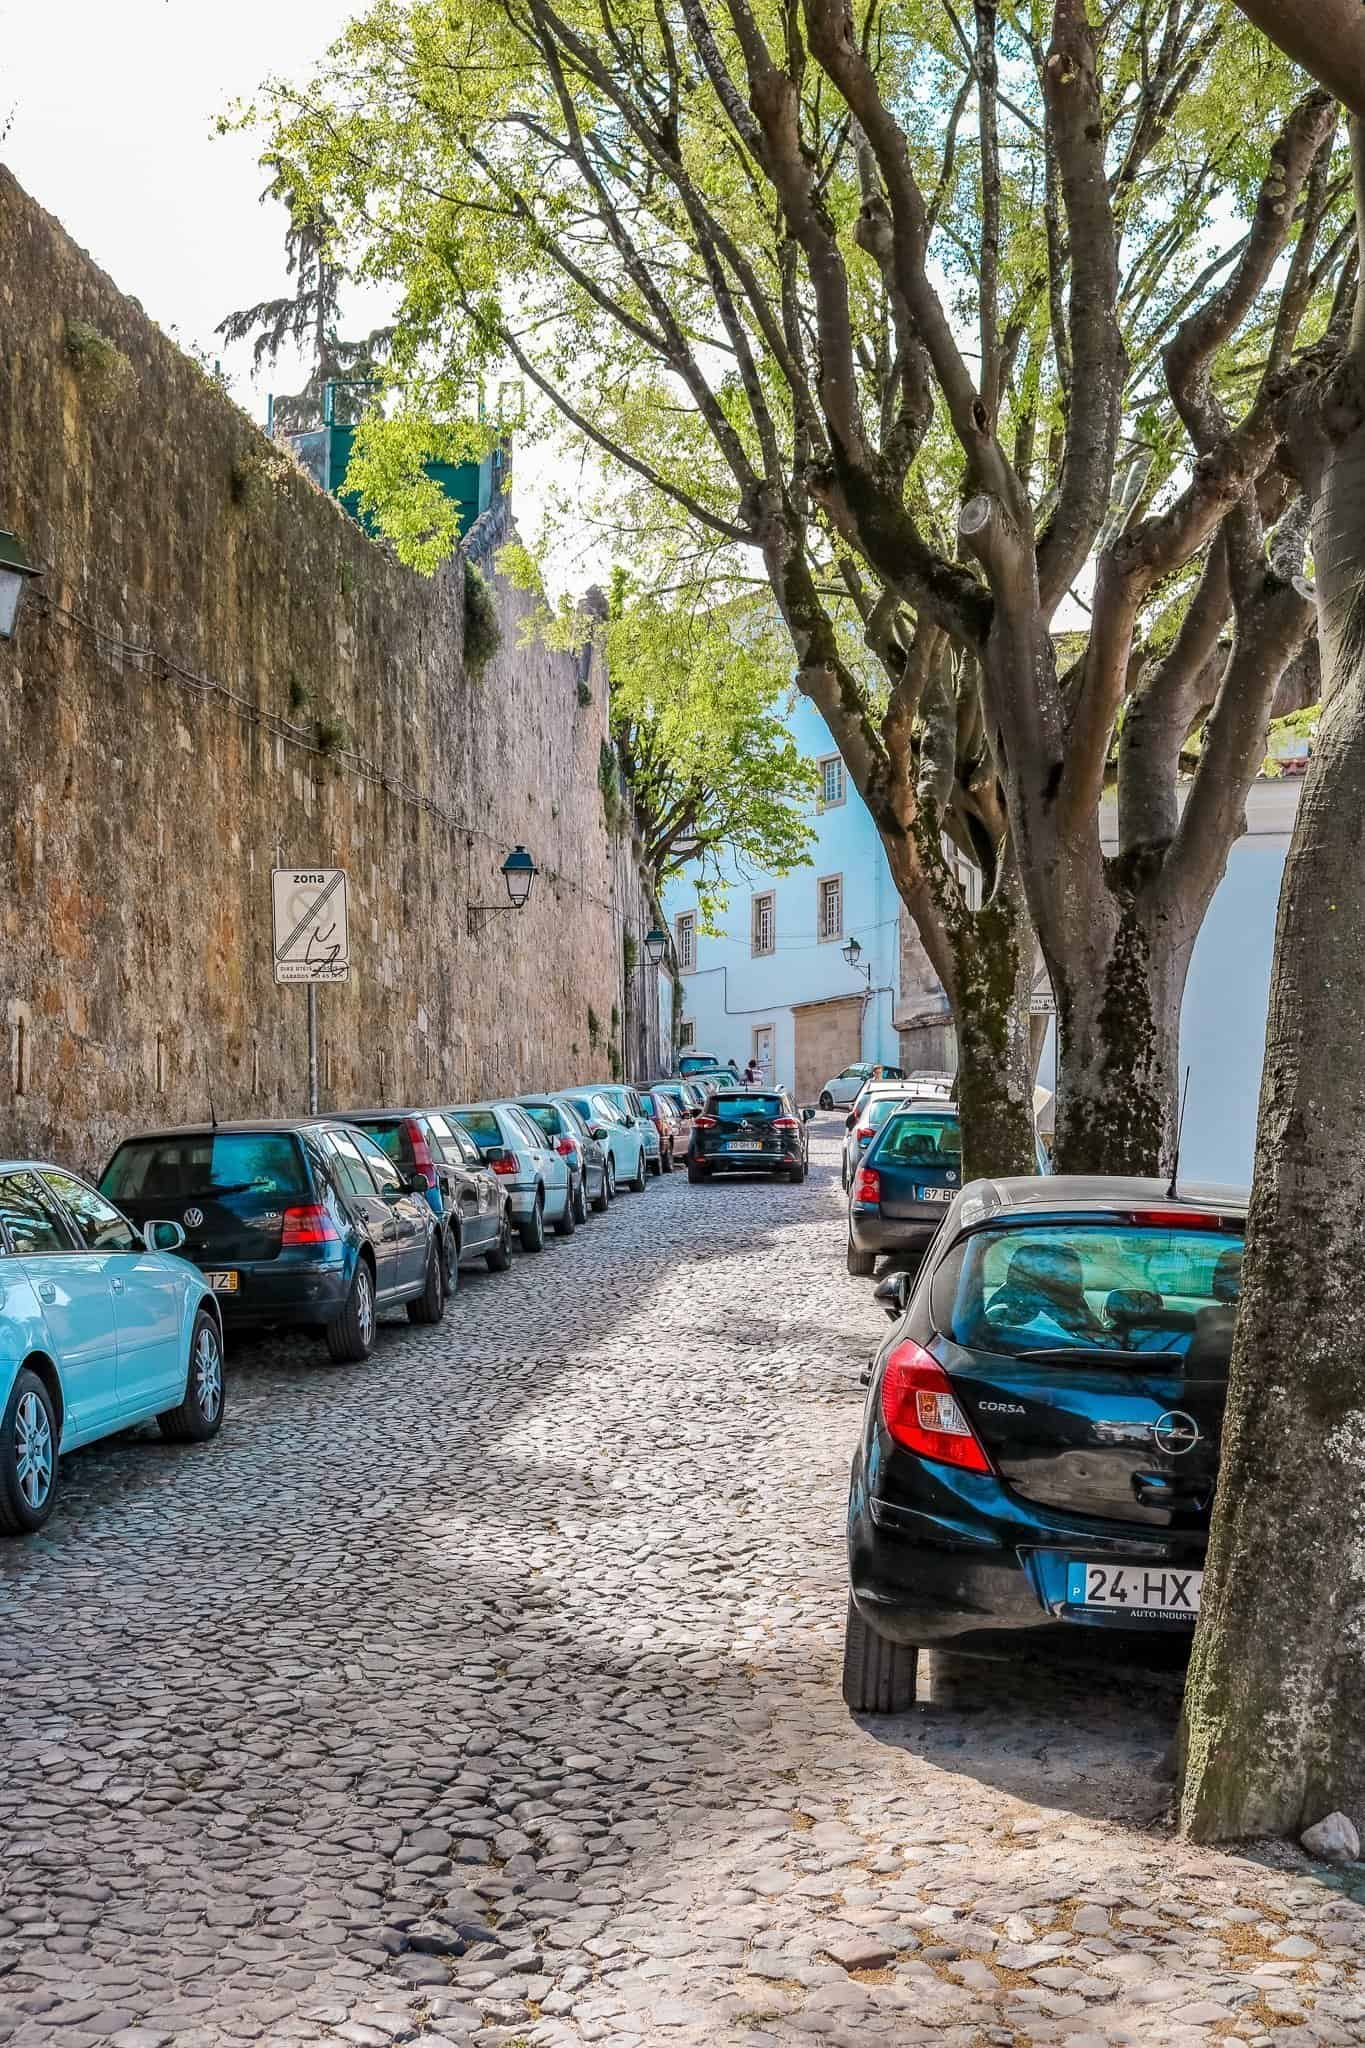 Narrow Streets in Coimbra, Portugal | The Next Trip